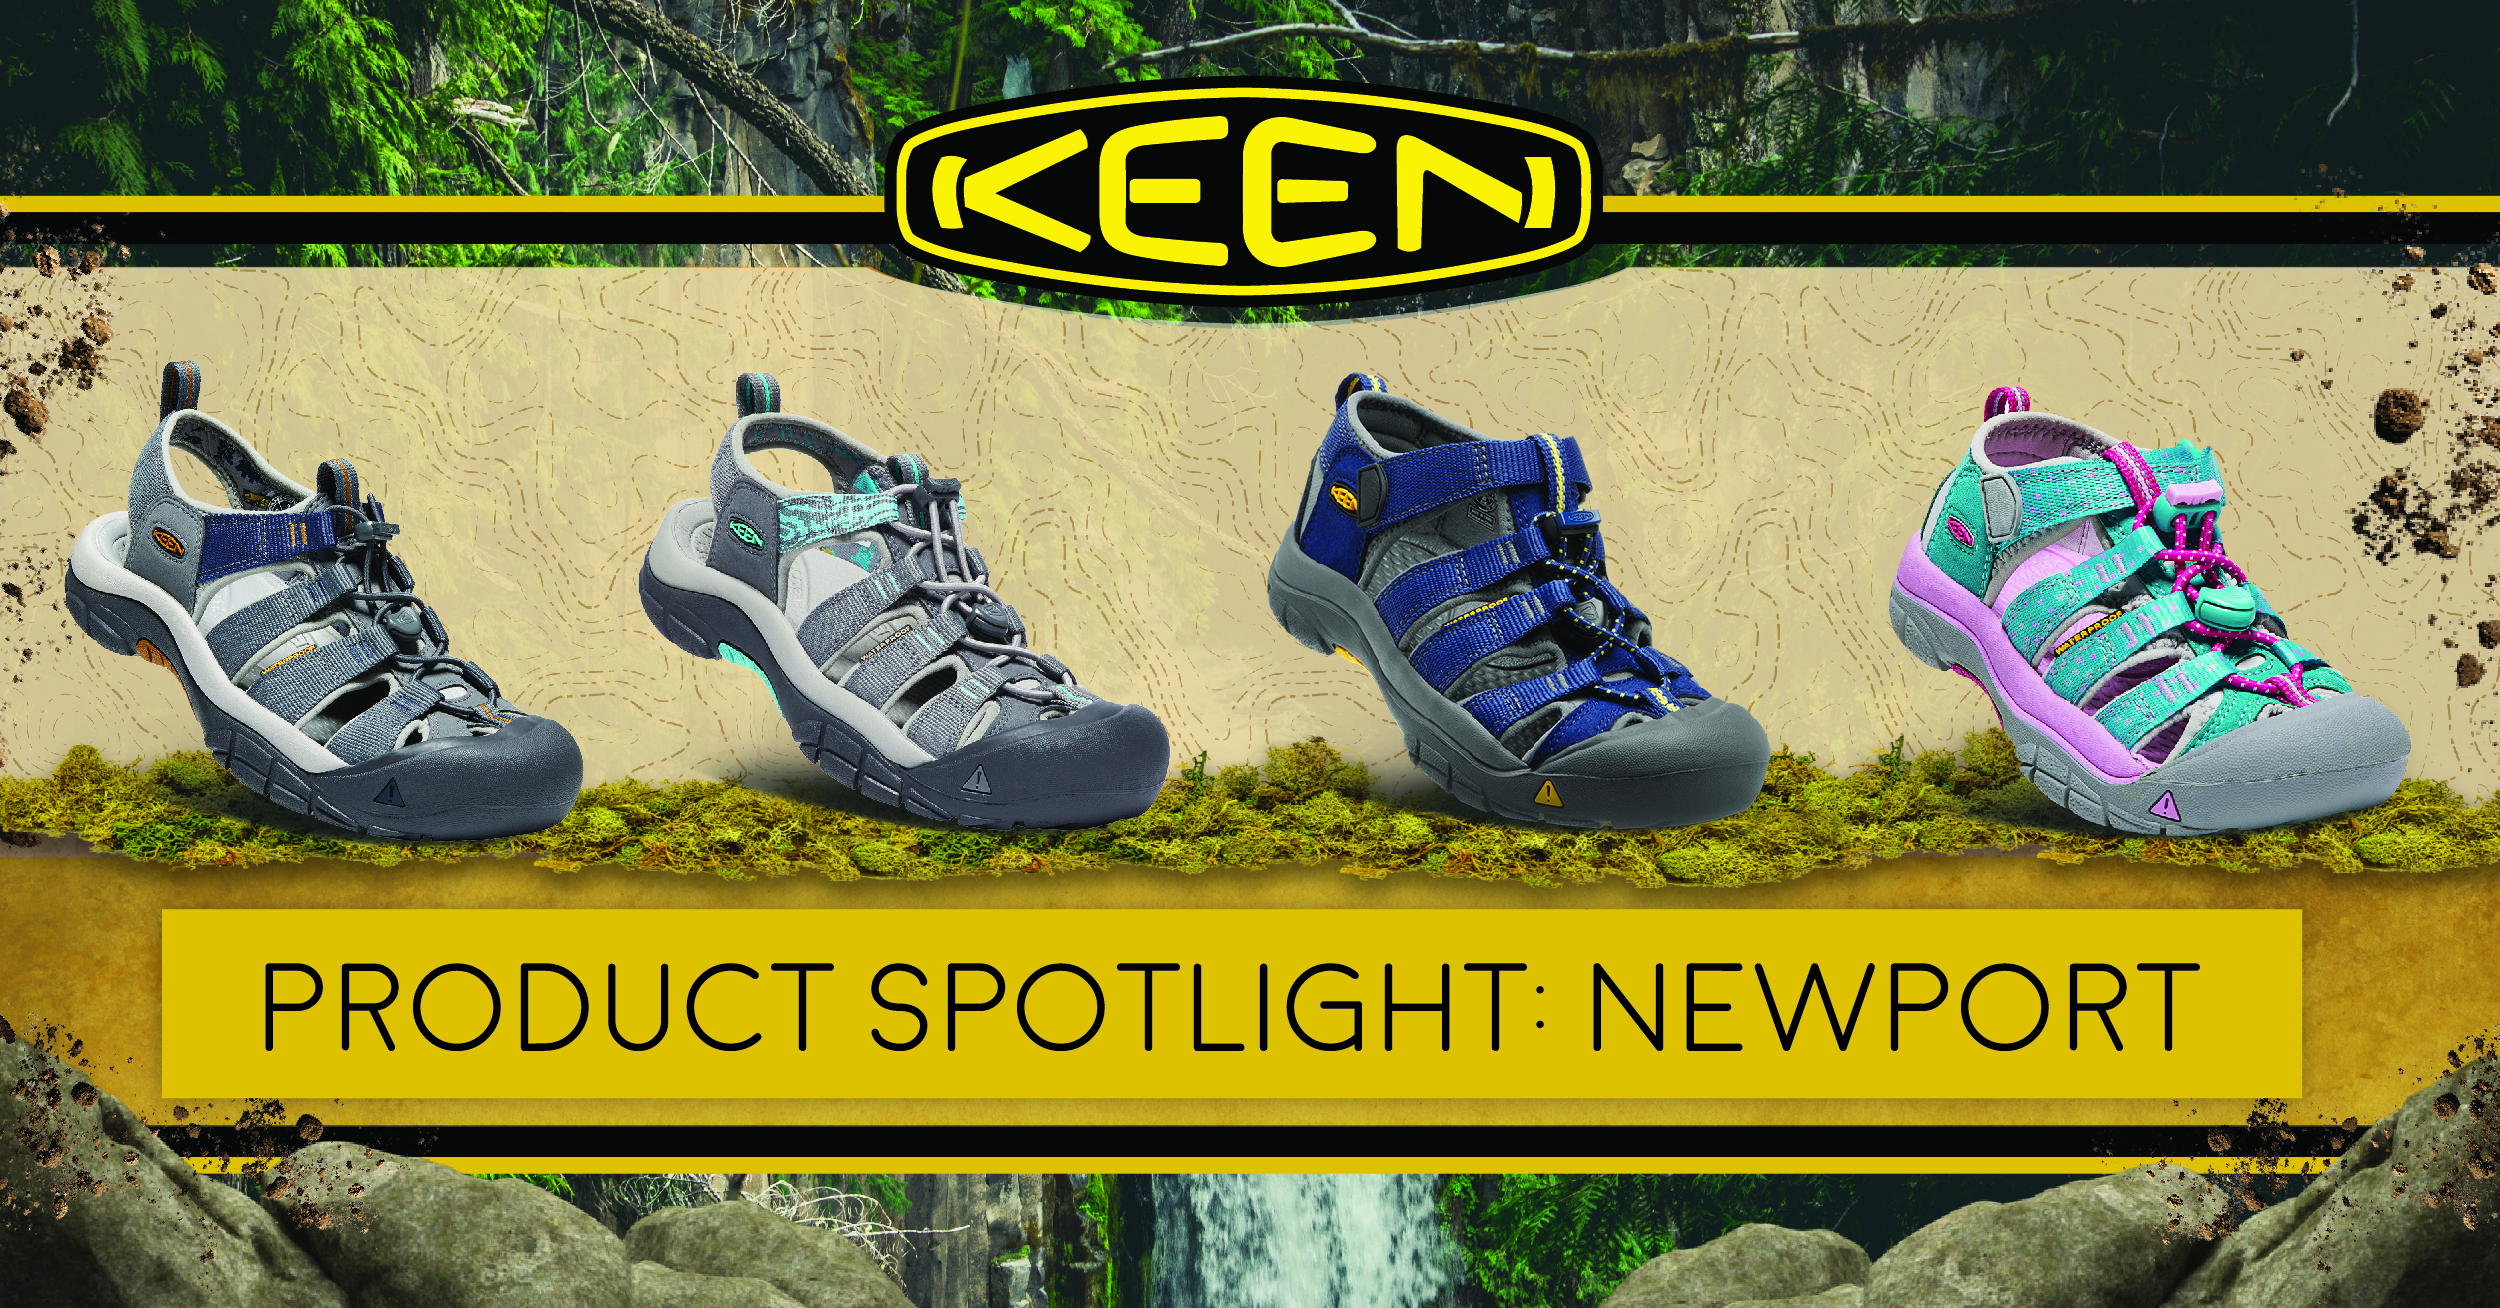 33357ad2b182 Hiking Sandals with a Twist  The KEEN Newport. ""